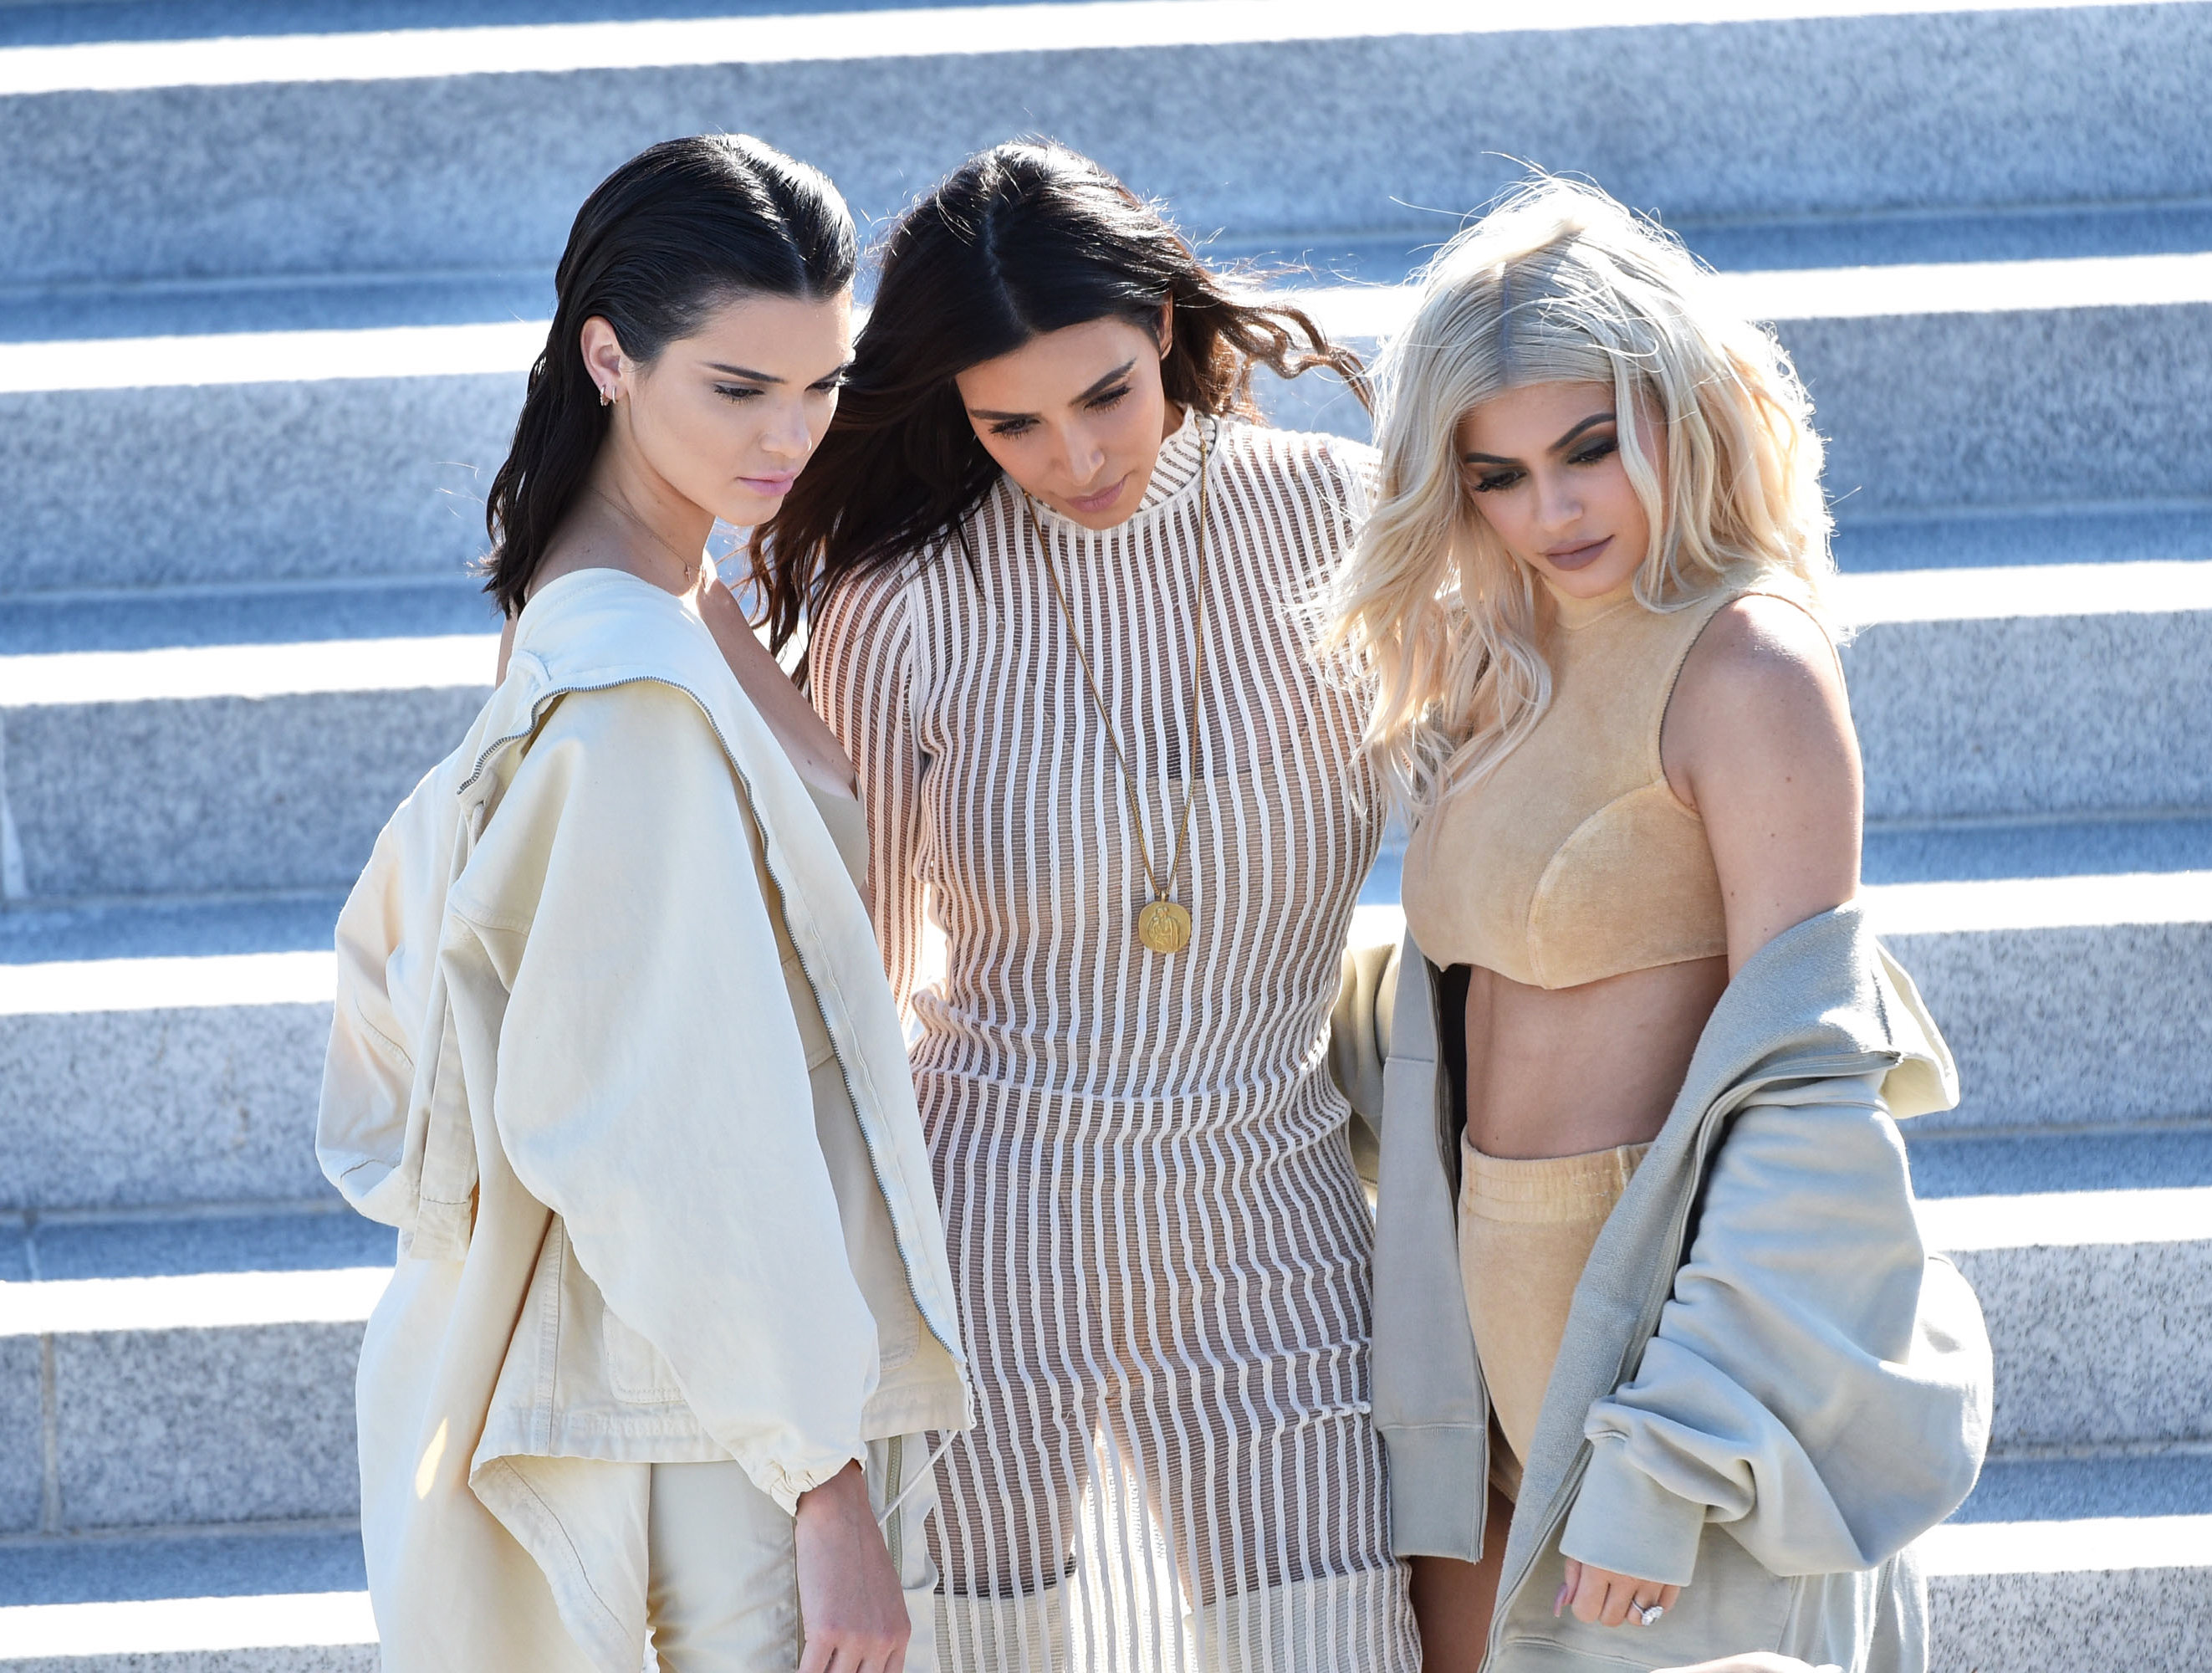 Kendall Jenner, Kim Kardashian and Kylie Jenner - September 7, 2016